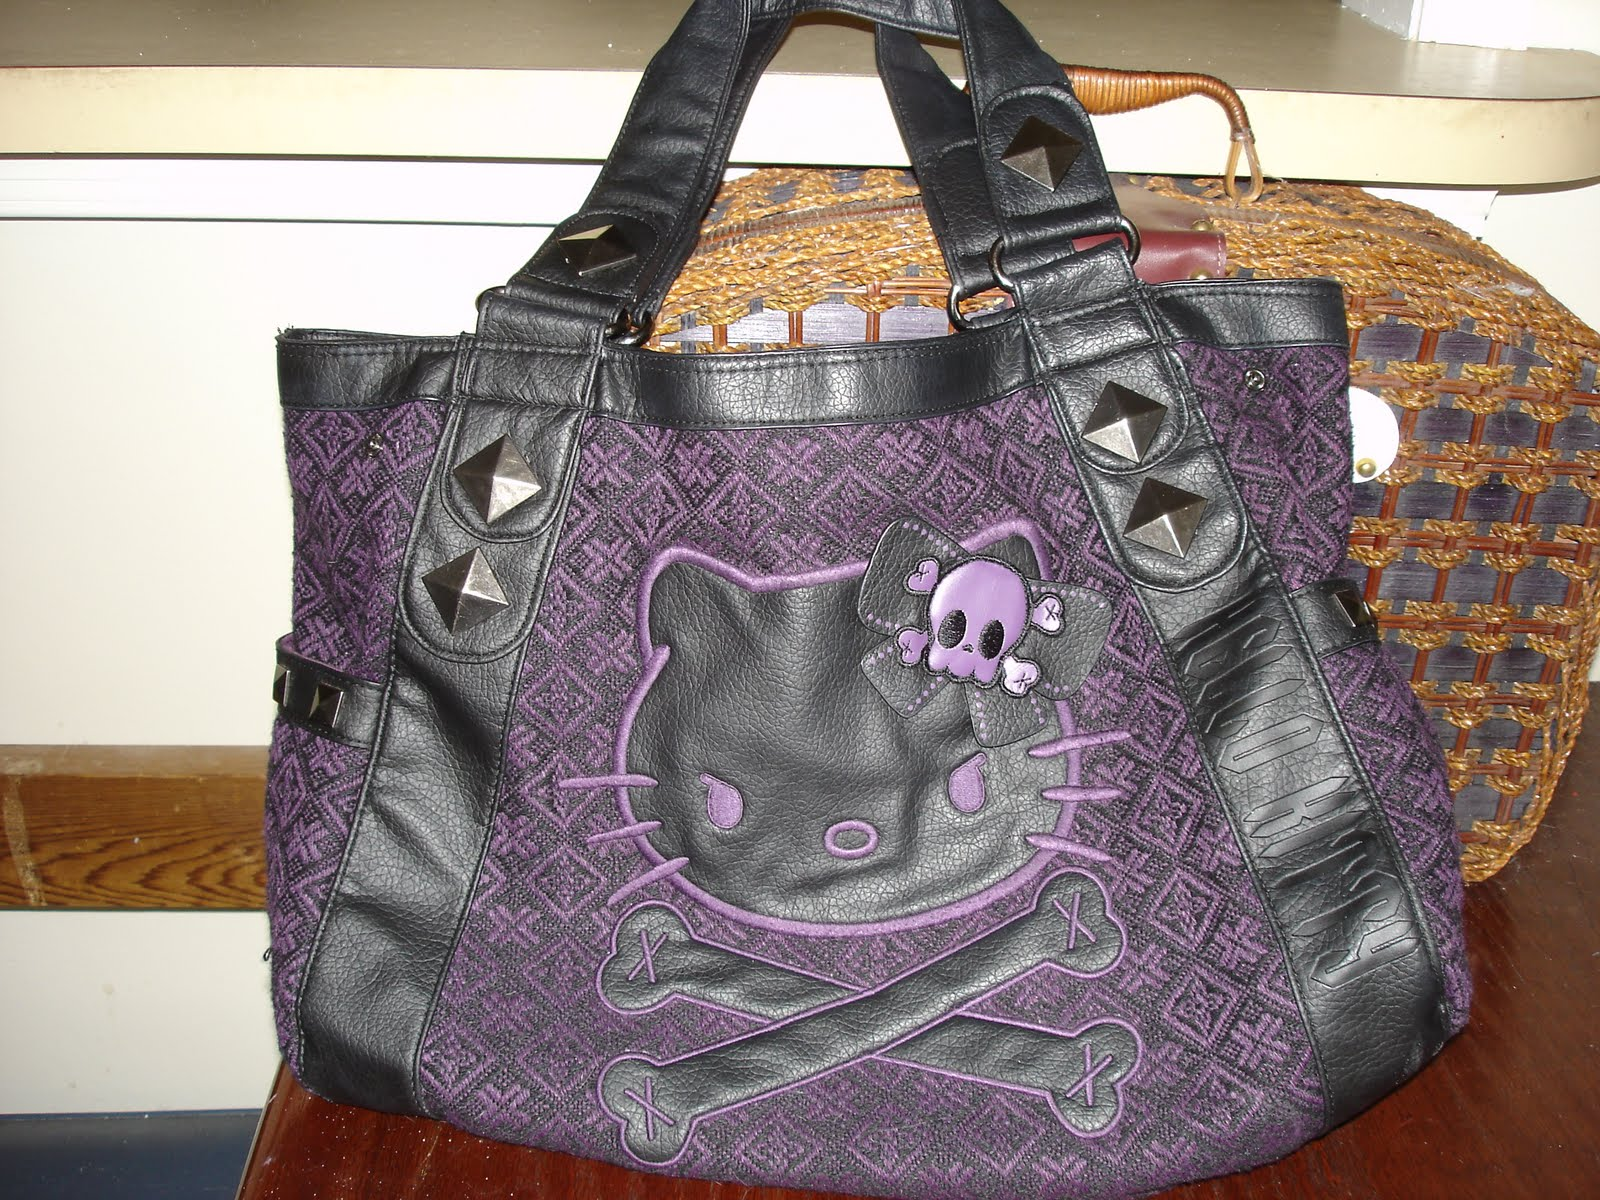 a890de206a23 Loungefly also has these shiny tote patent faux leather bags with embossed  detail that I want to buy. They come in different colors.